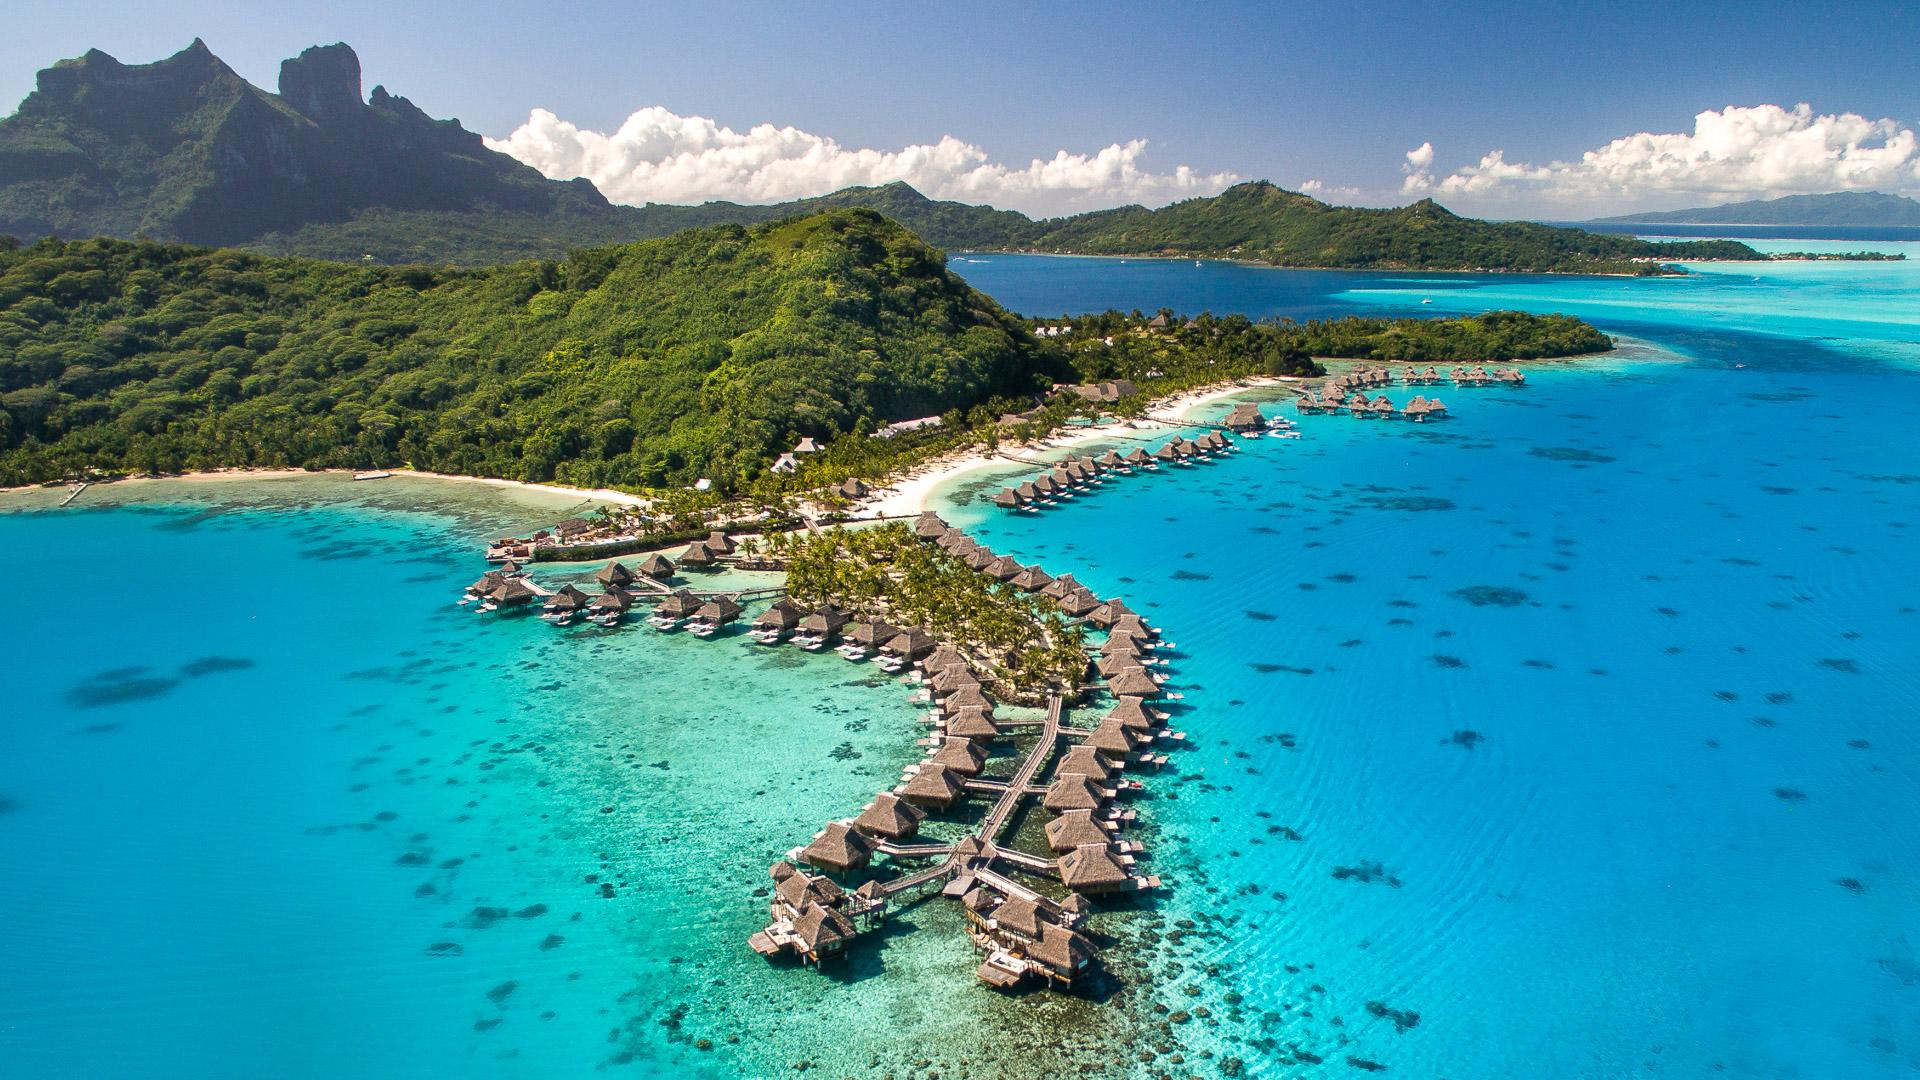 15 Luxurious Vacation Spots Beloved by the Rich and Famous